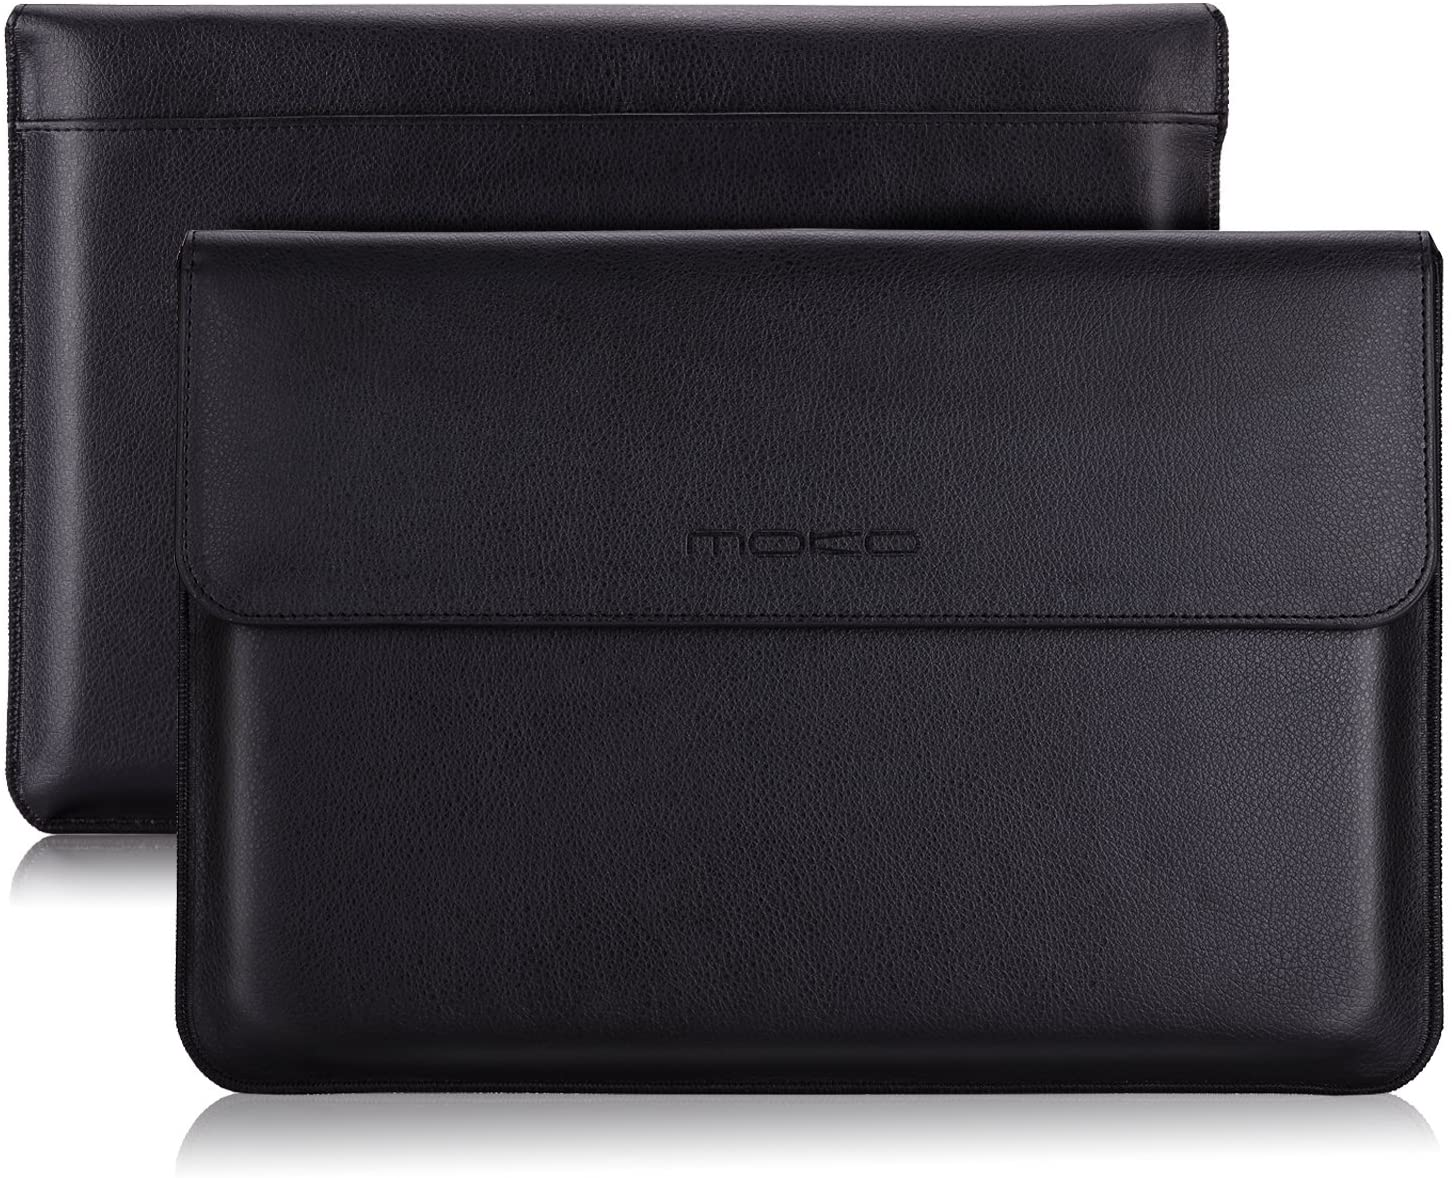 MoKo Laptop Sleeve Case Fits MacBook 12 Inch, Surface 3 10.8, PU Leather Protective Notebook Case Bag with Document Pocket and Built-in Card Slot - Black